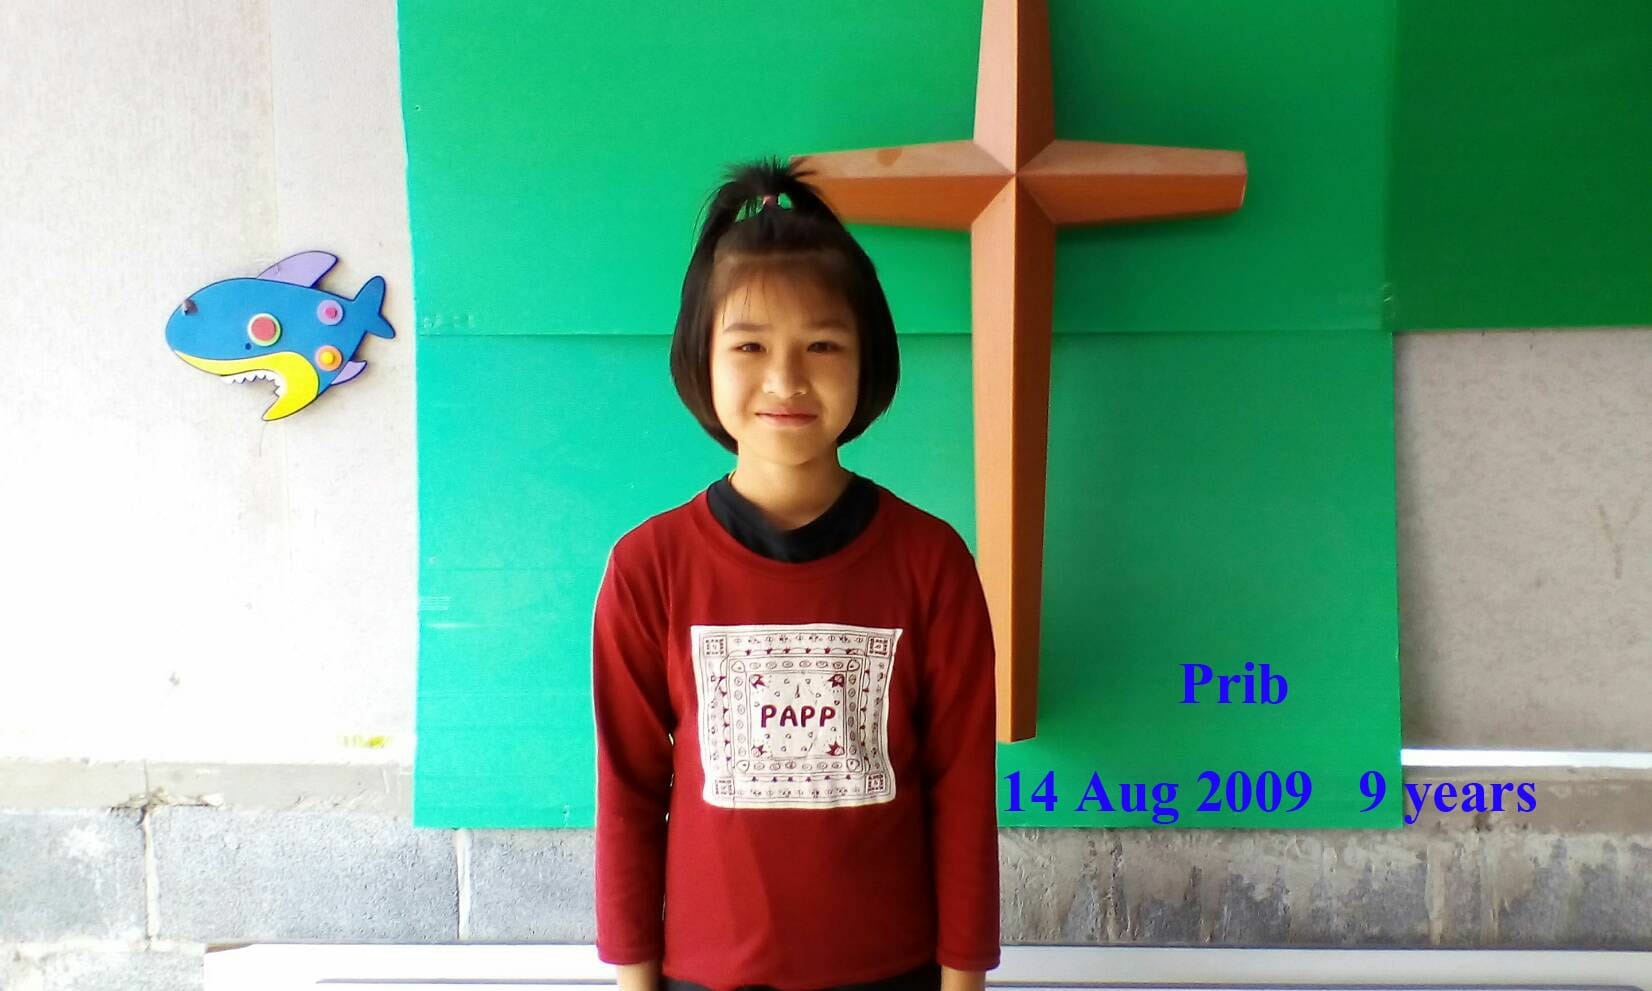 Prib ( 9 years old, girl)